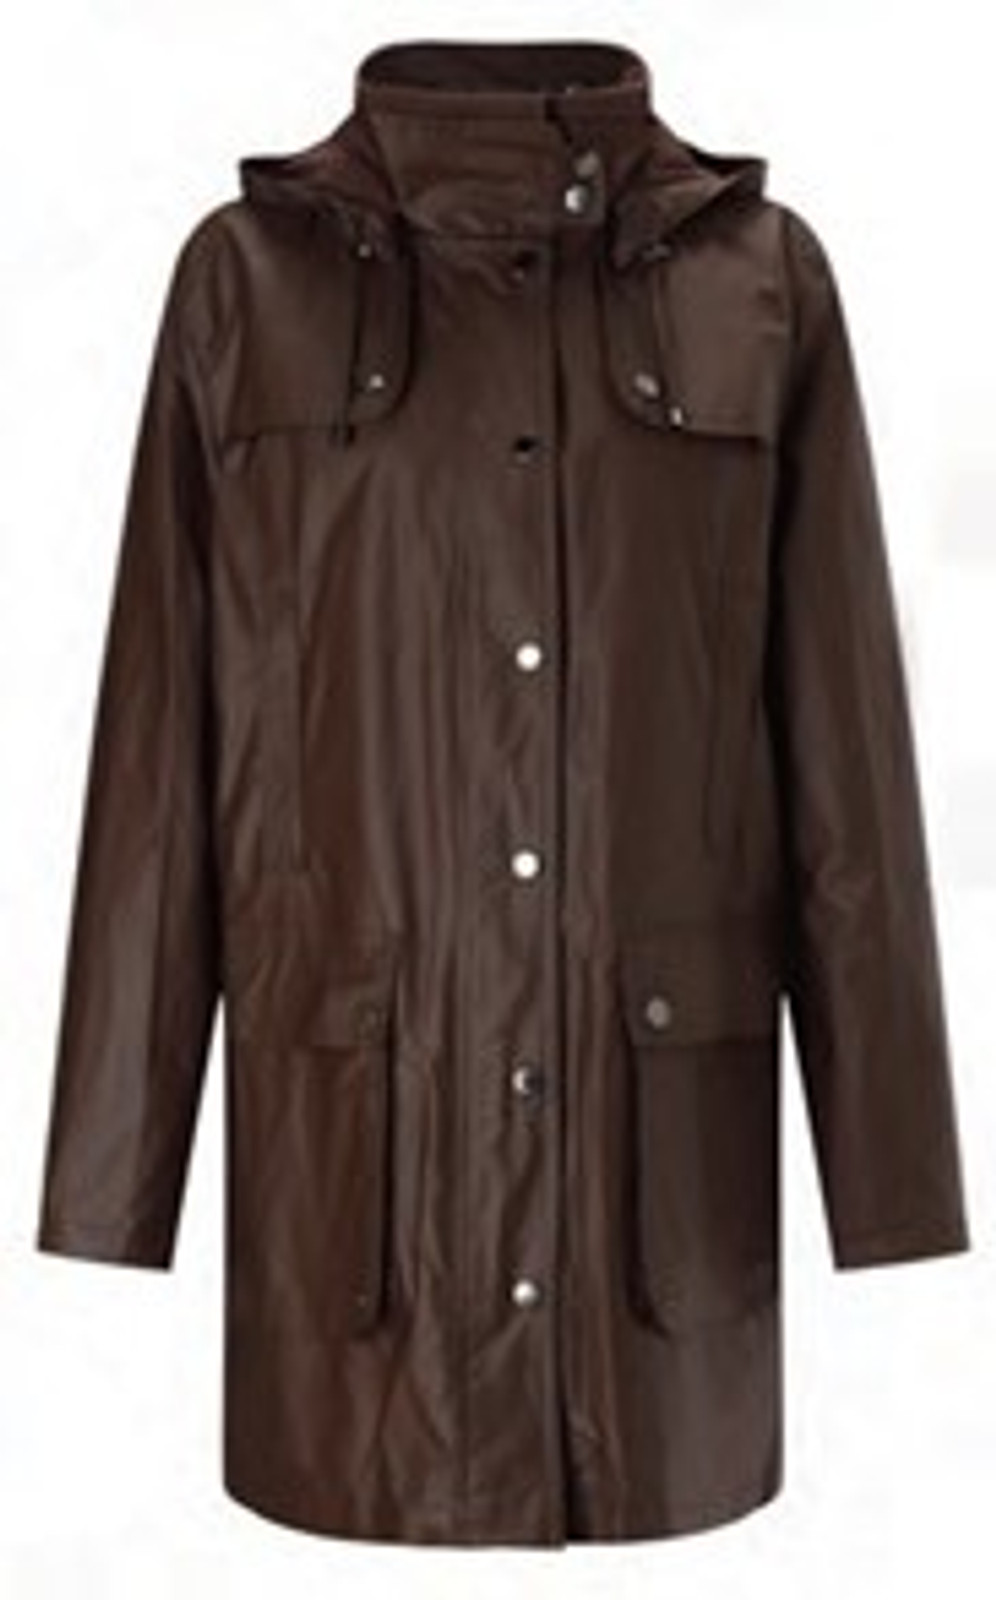 wax Jacket, Chocolate